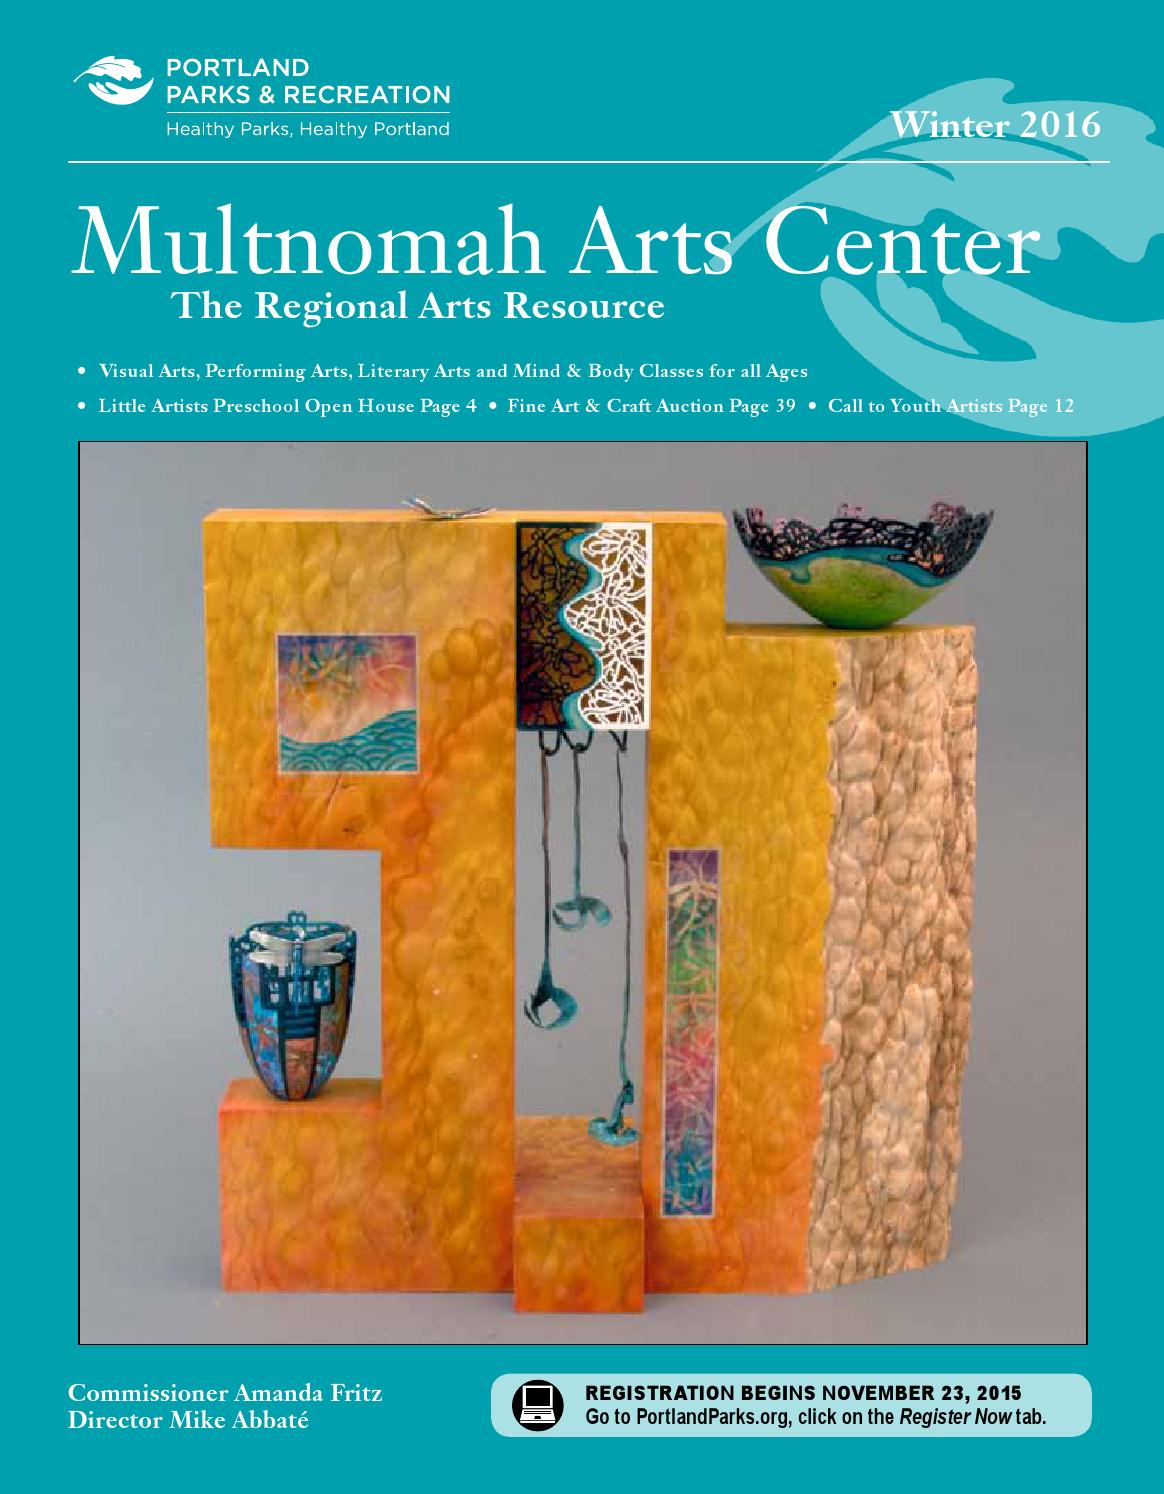 Multnomah arts center classes activities winter 2016 by for Michaels arts and crafts class schedule